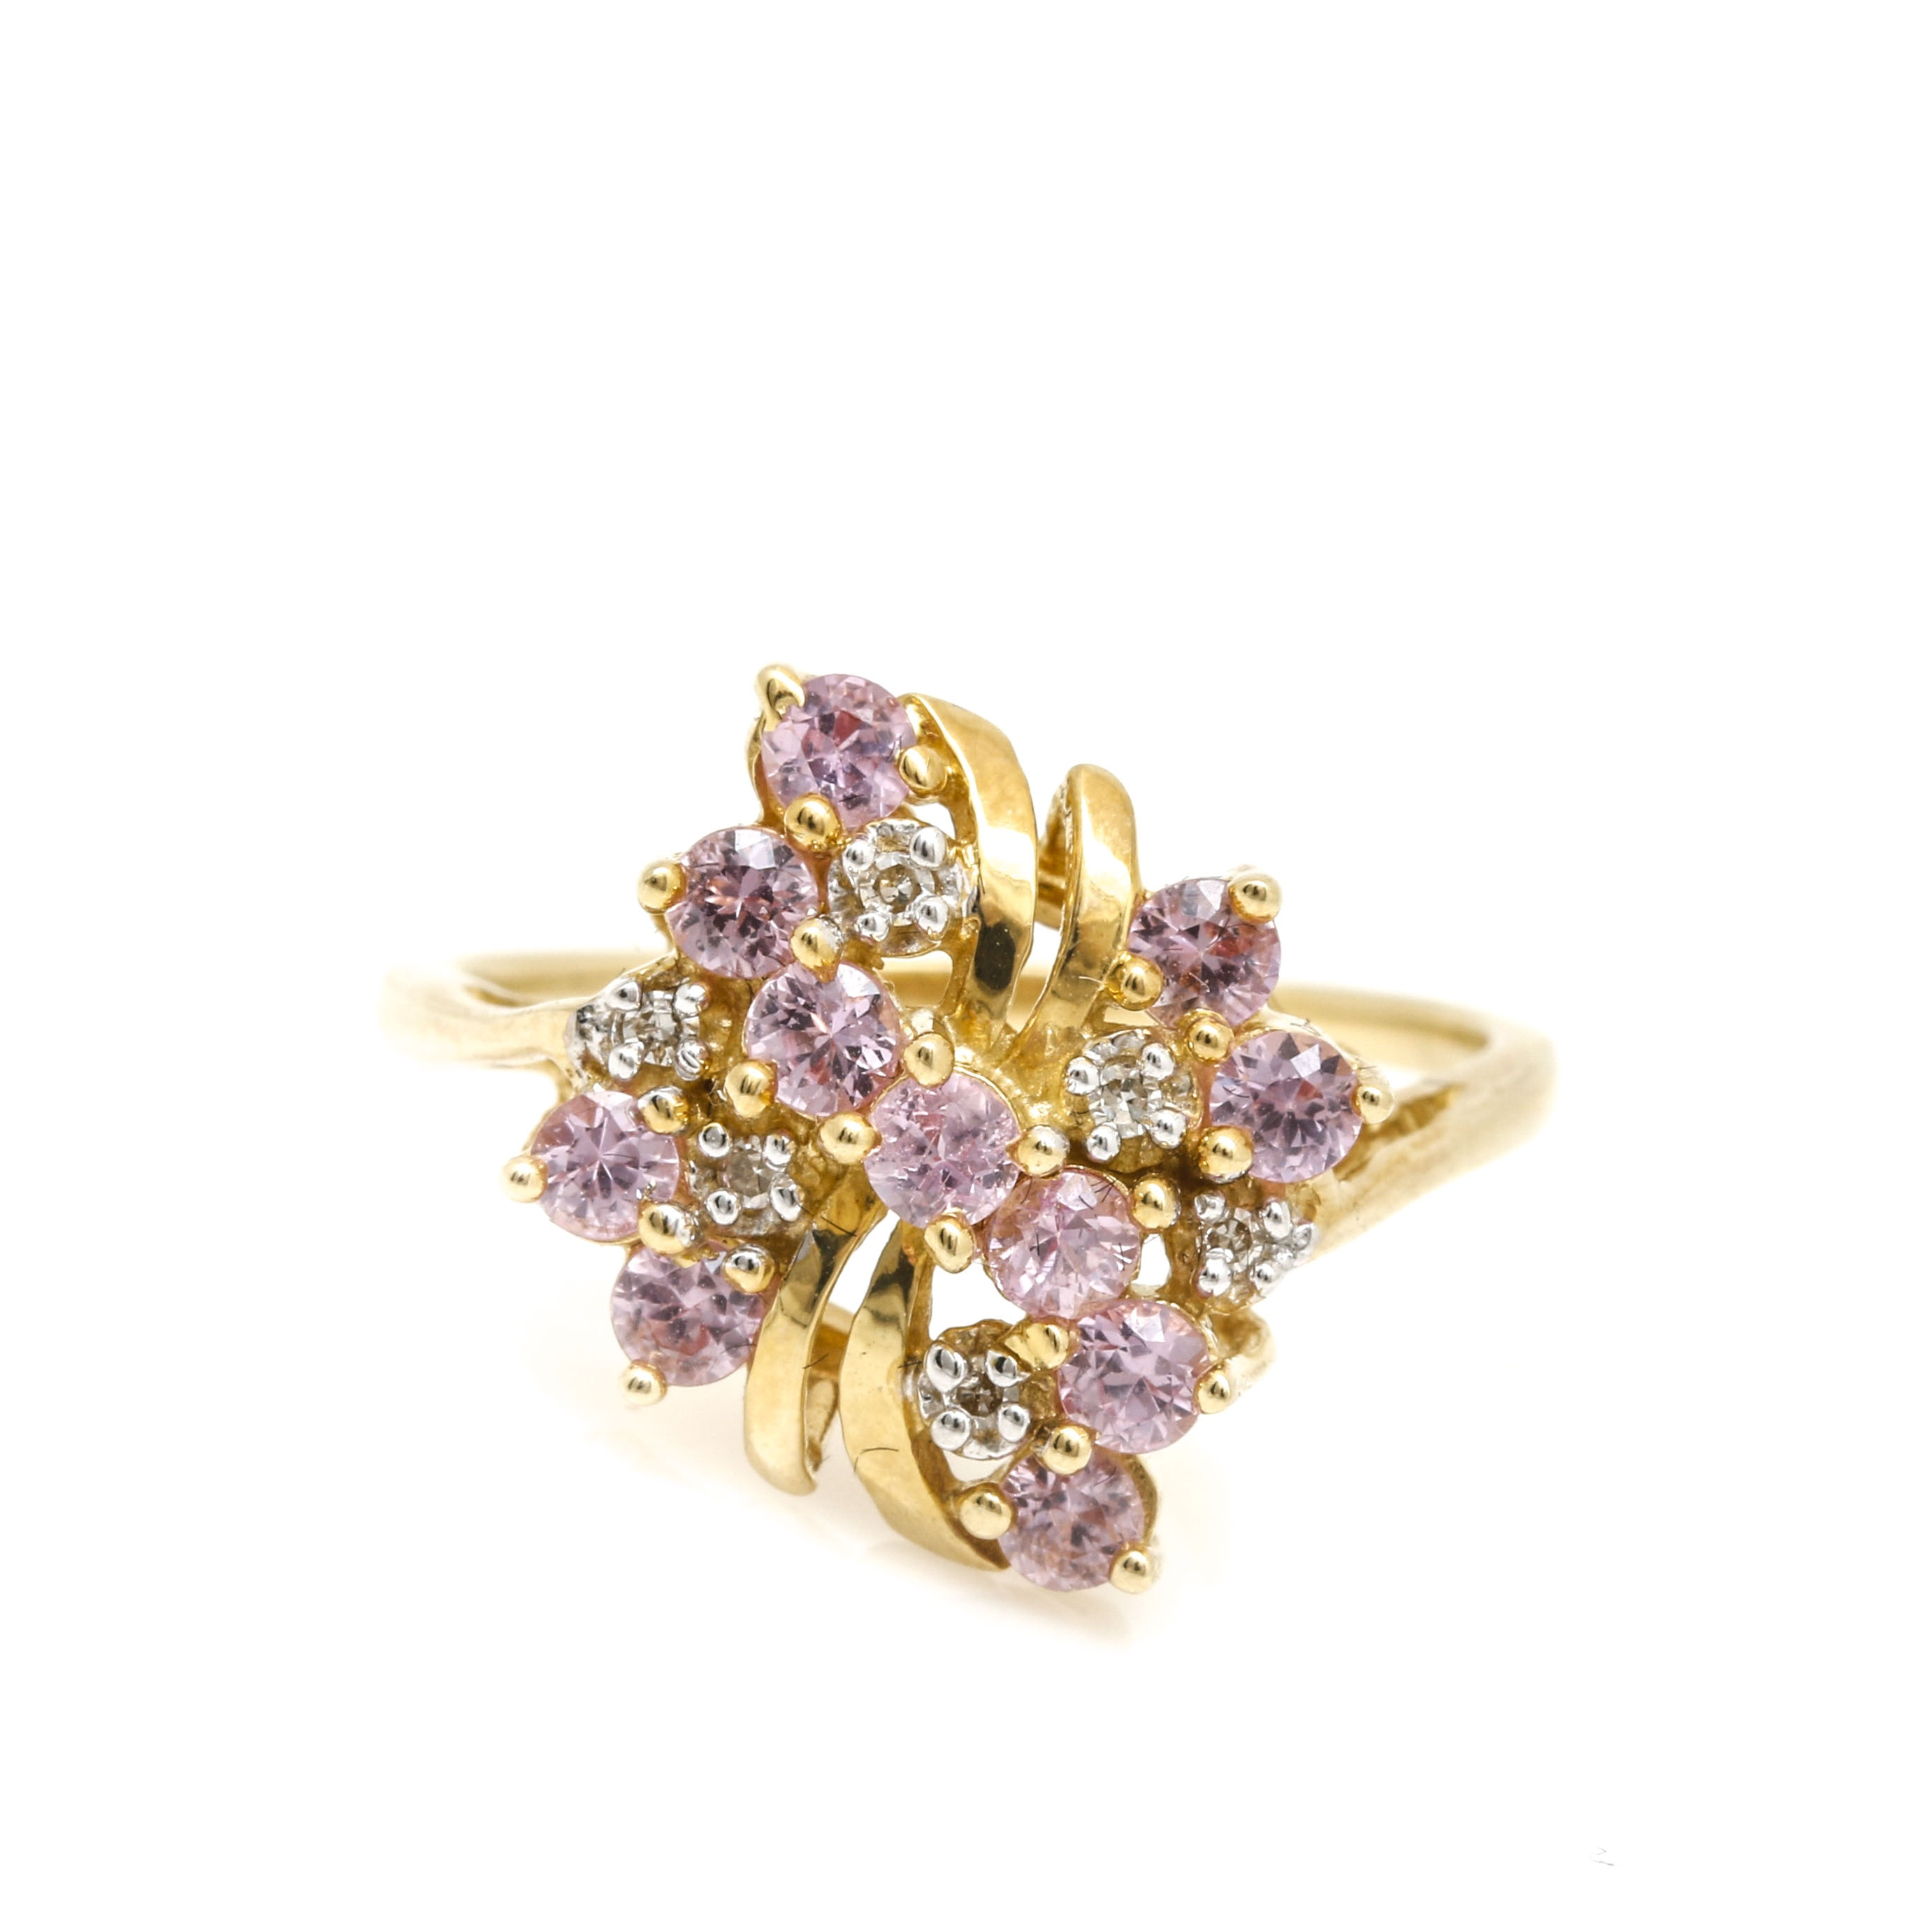 14K Yellow Gold Pink Sapphire and Diamond Cluster Ring